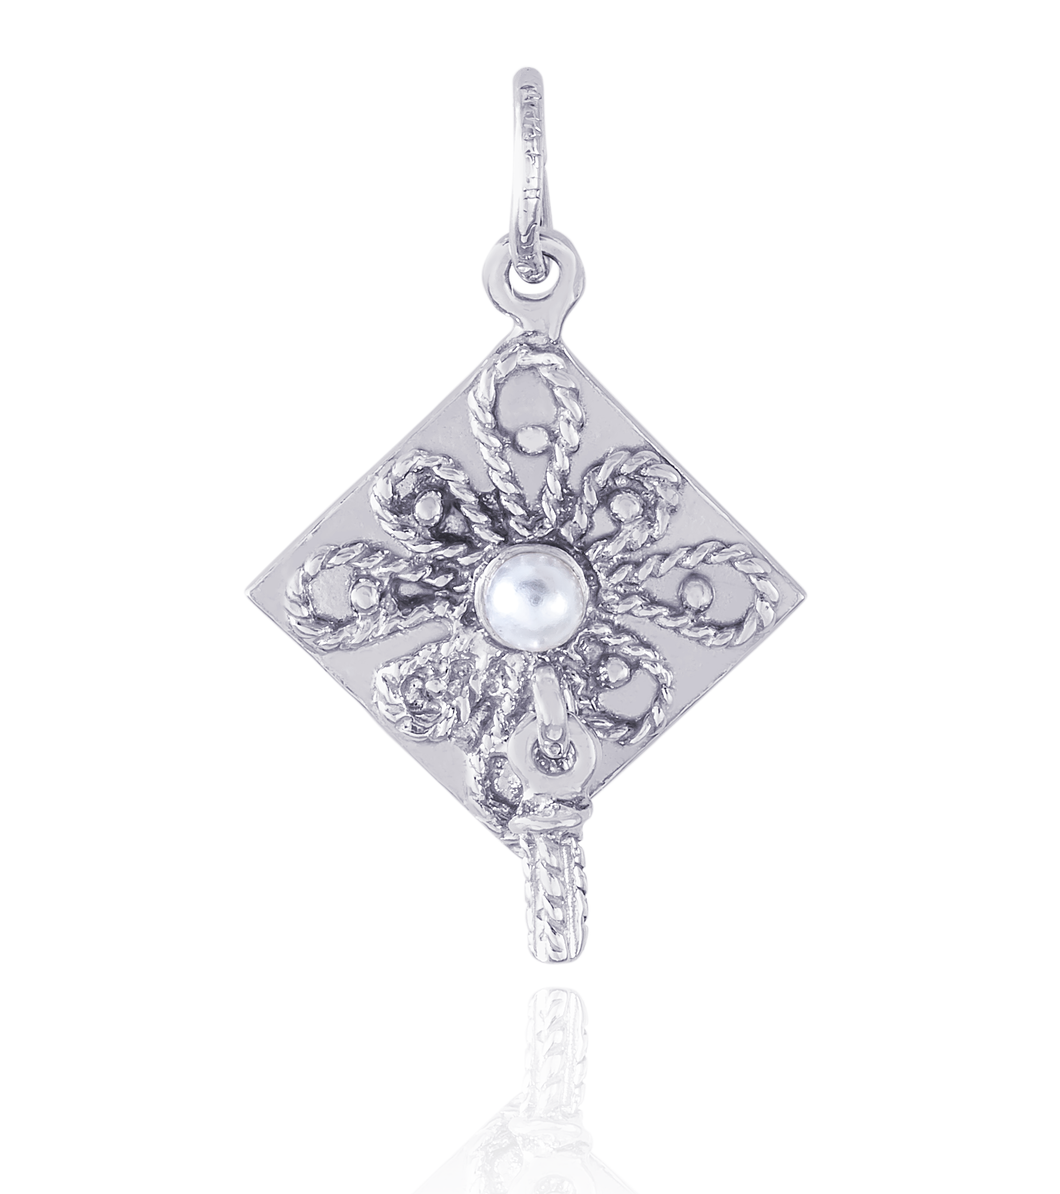 10Kt White Gold graduation Cap with Pearl Center Pendant